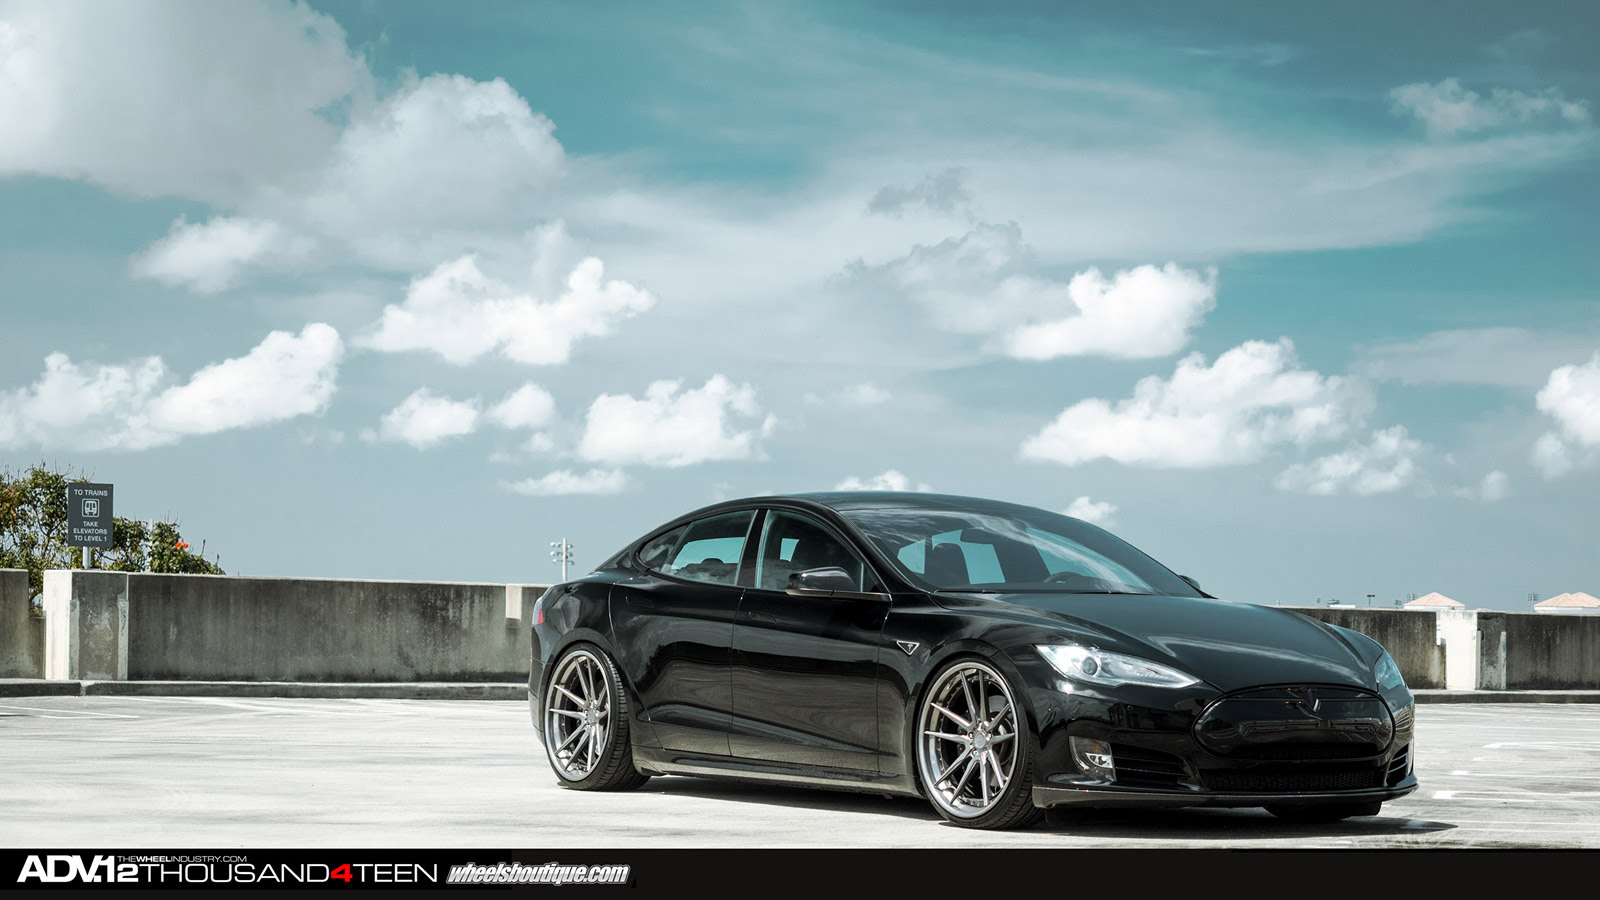 Tesla Model S Receives 22 Inch Adv 1 Wheels Autoevolution